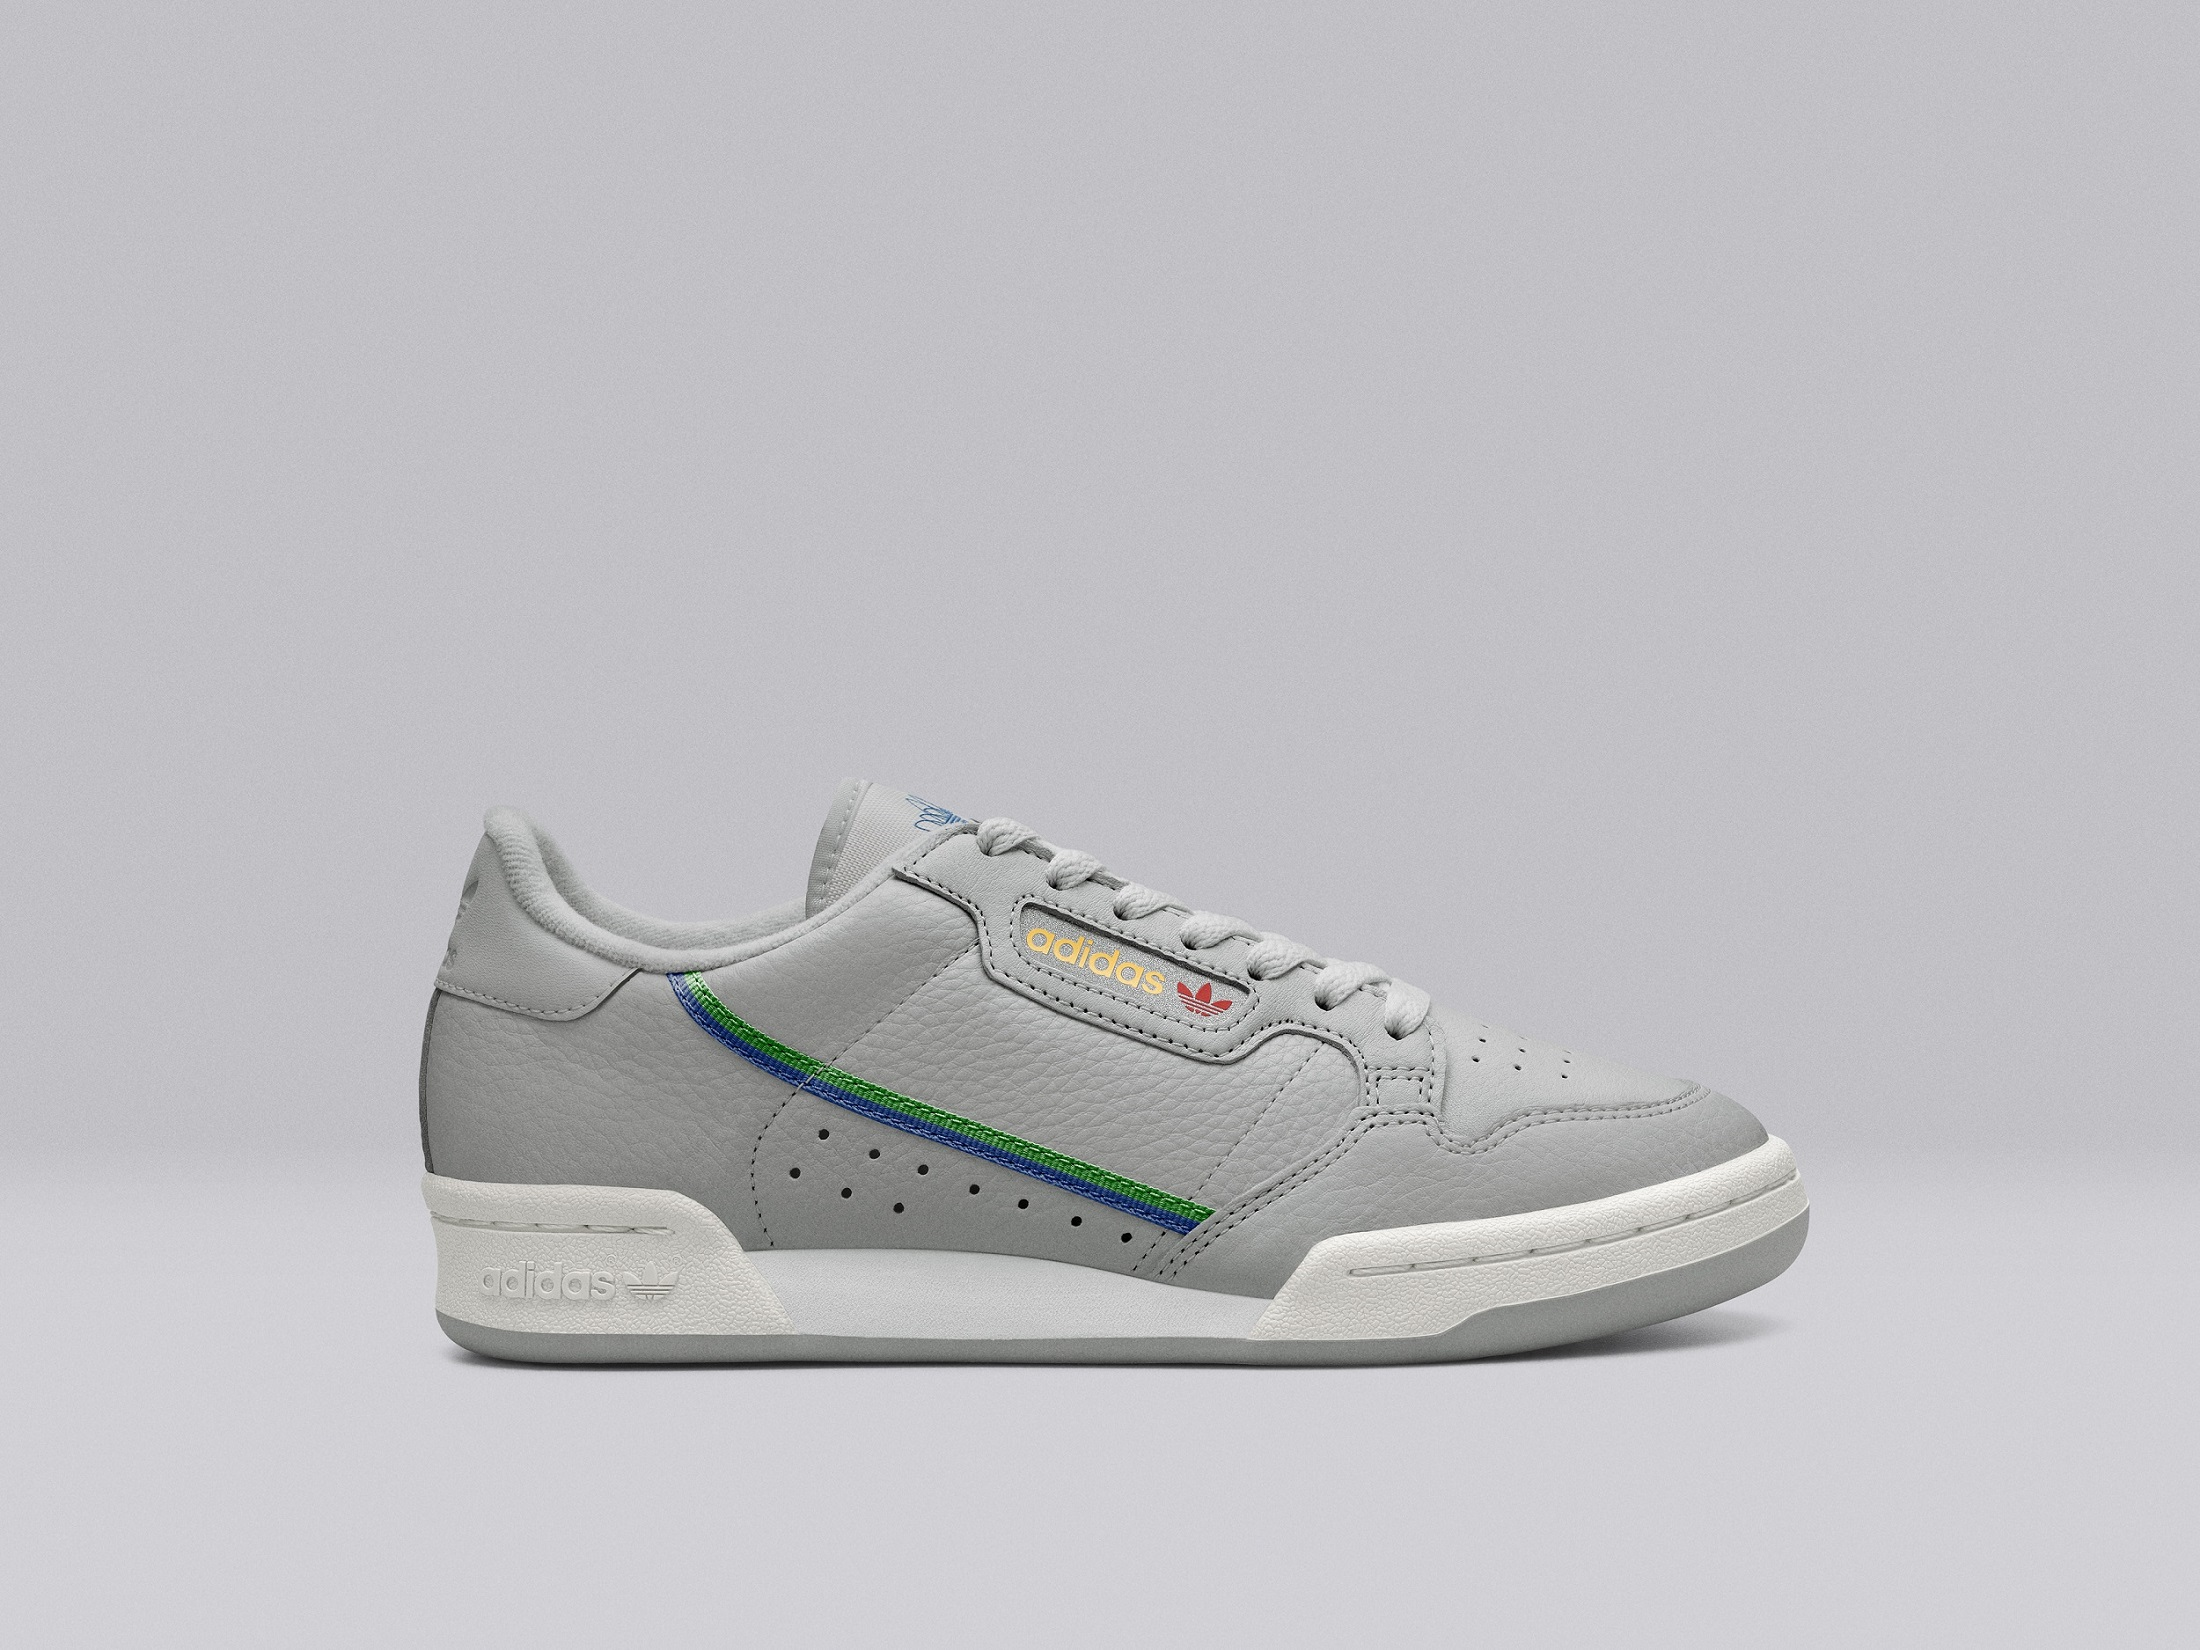 adidasoriginals_ss19_continental80_4_0